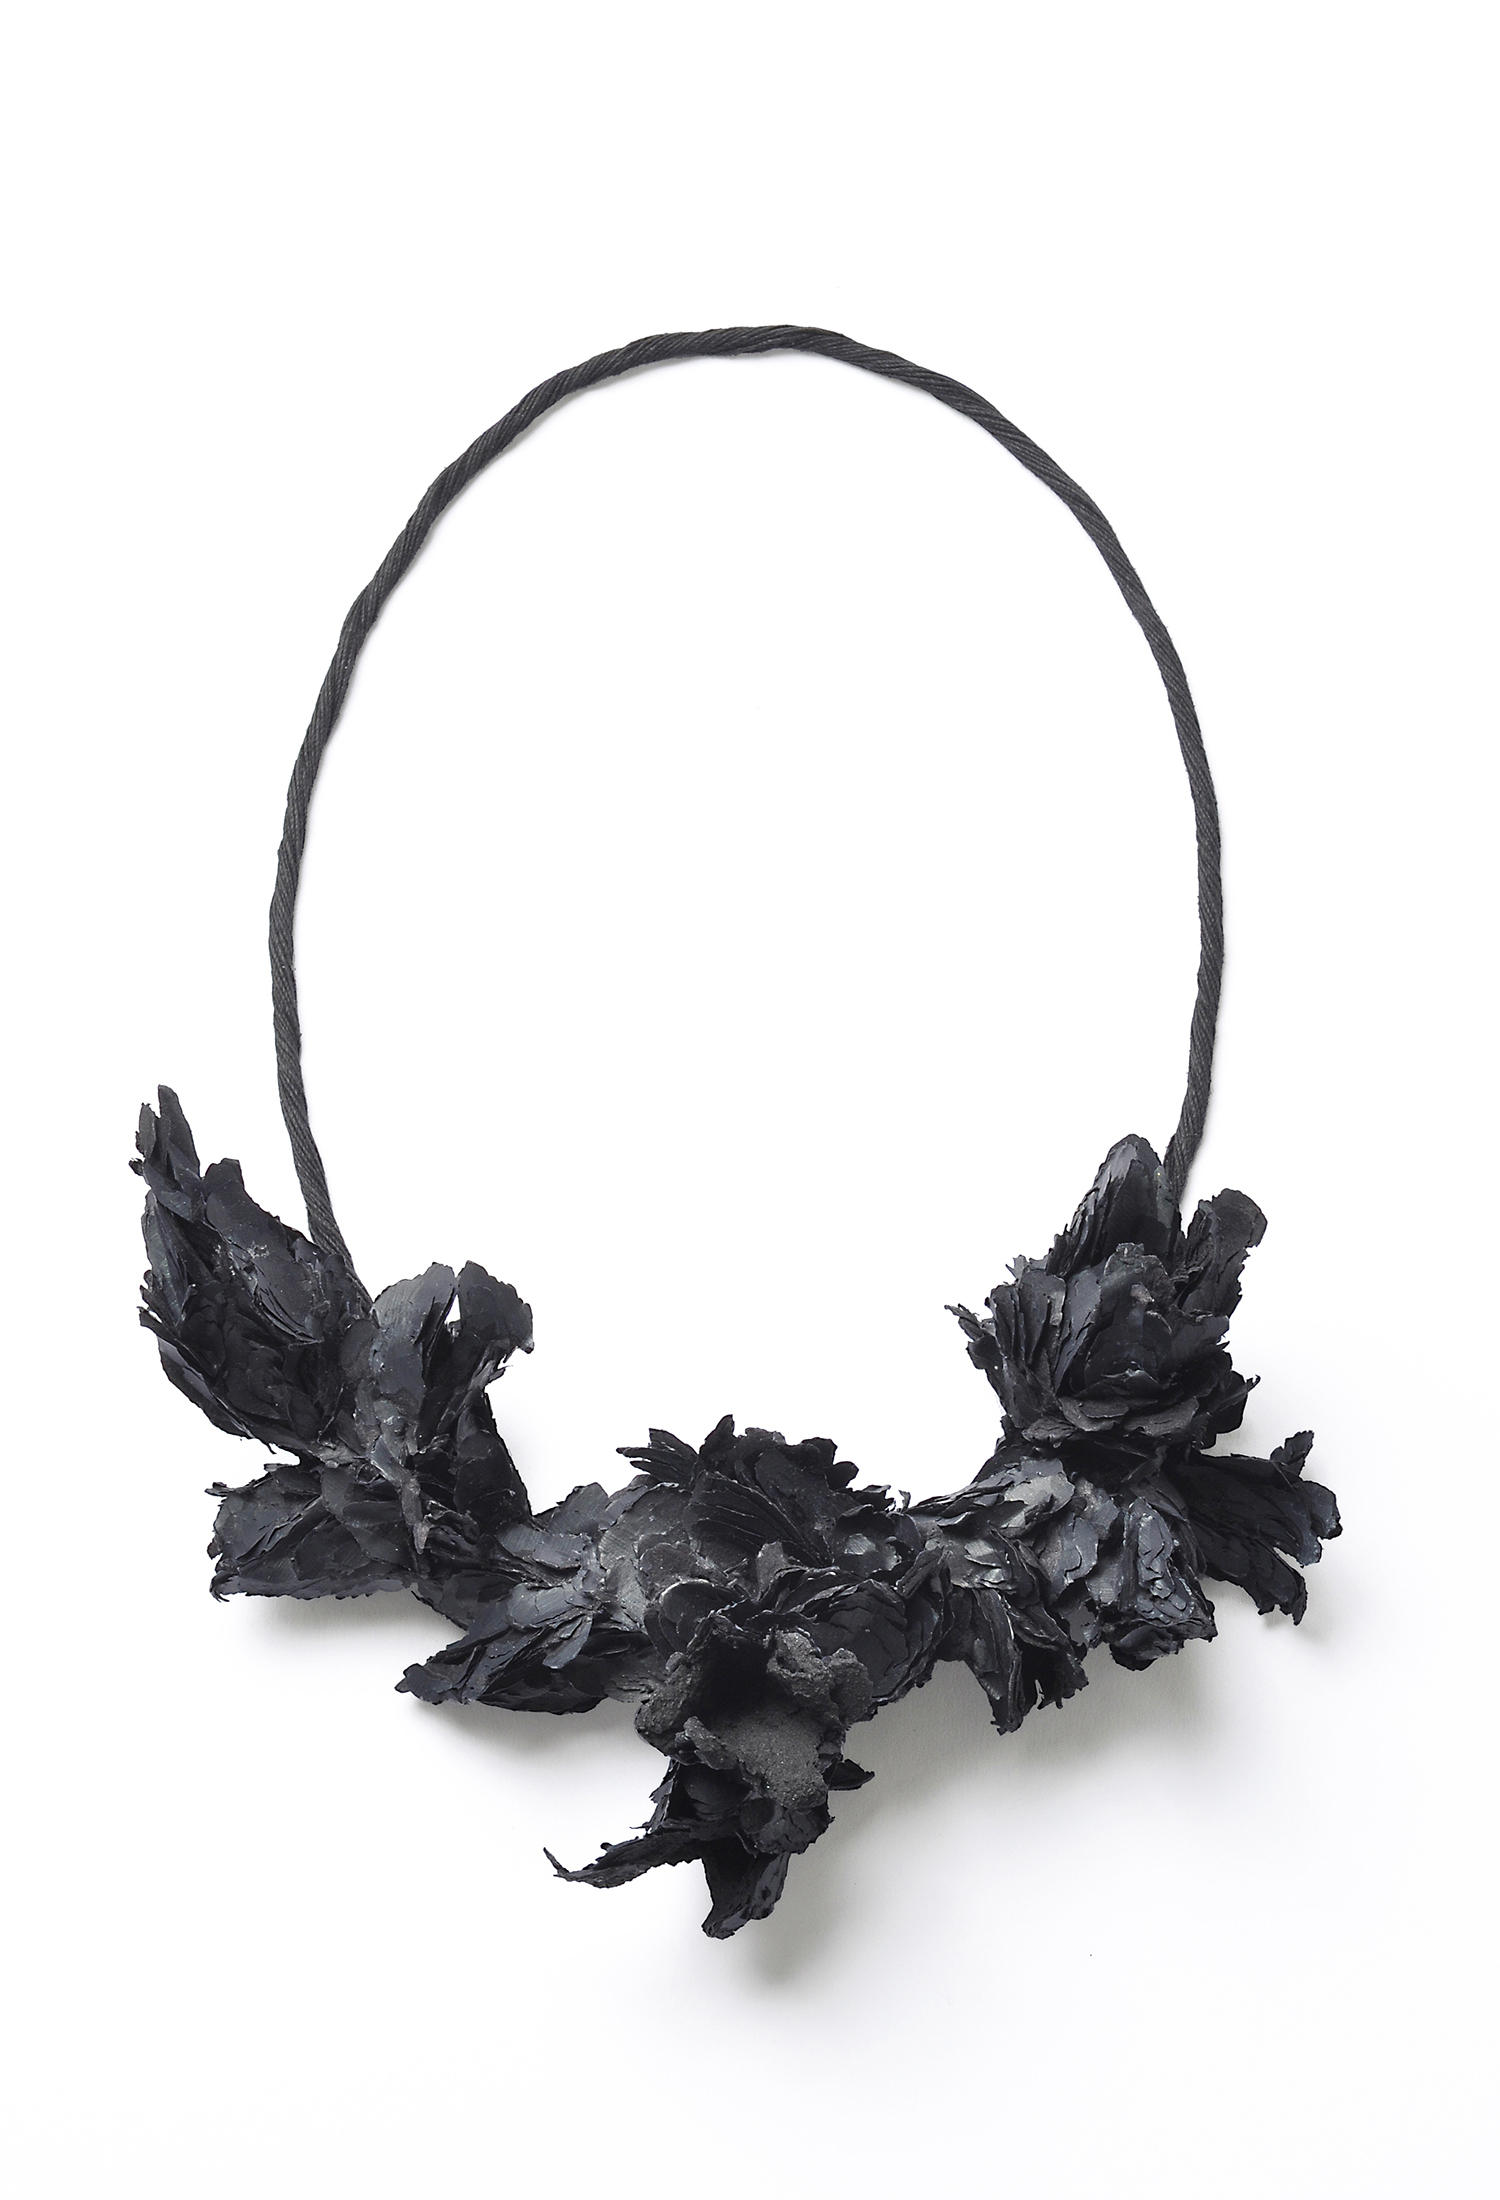 Untitled | Necklace    |   2010    |    Treated cellulose, paint, coal, glue, linen |      205X150X73 mm |     Photographer: Mirei Takeuchi